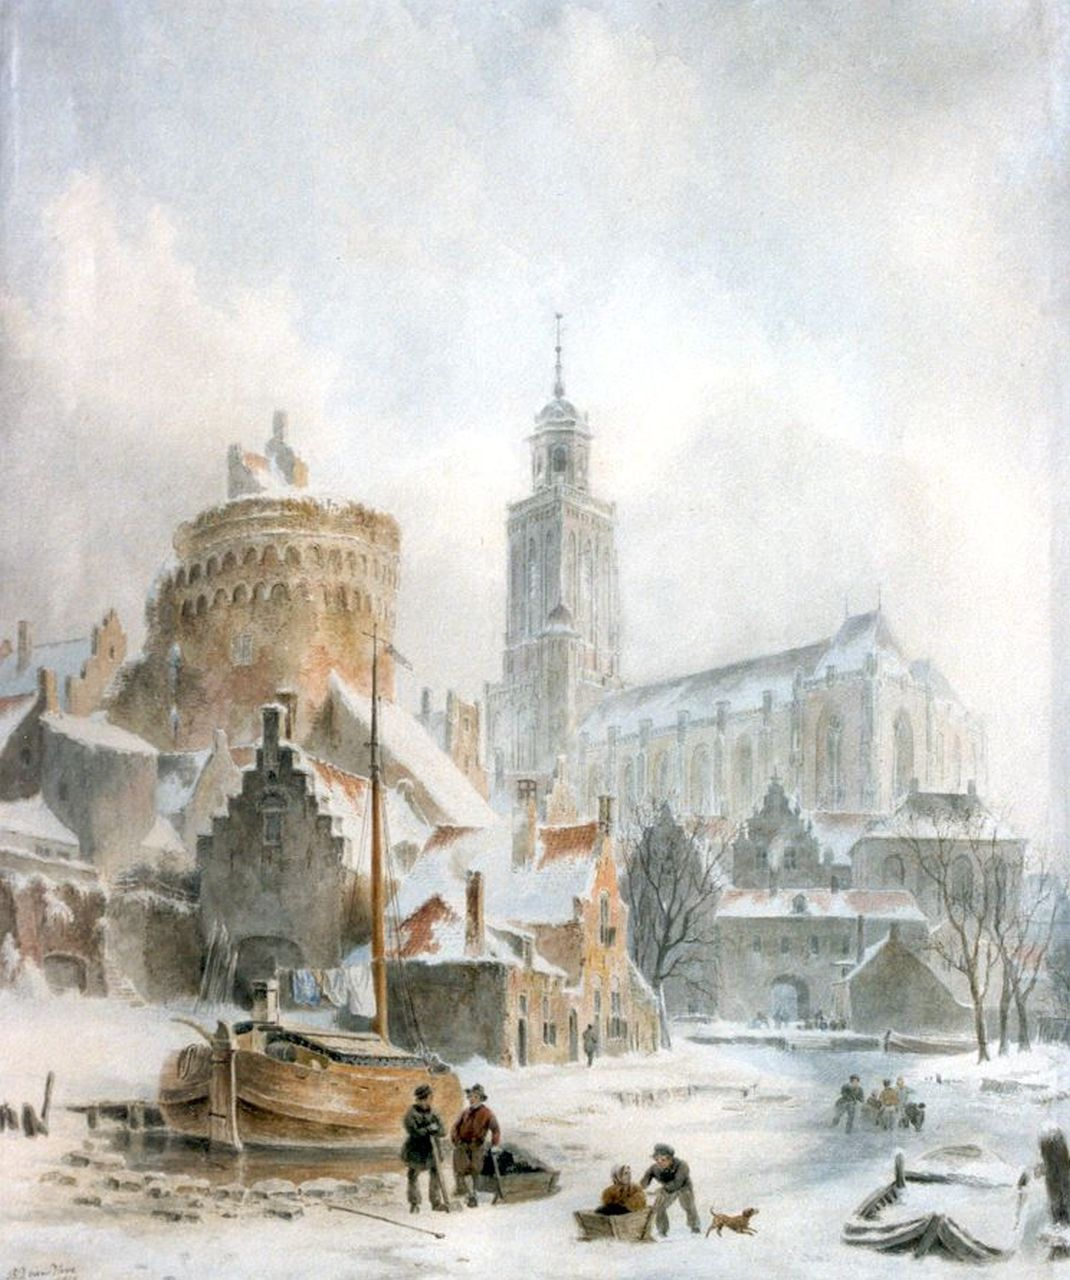 Hove B.J. van | Bartholomeus Johannes 'Bart' van Hove, A view of the city gate and church of Deventer, watercolour on paper 47.0 x 40.0 cm, signed l.l. and dated 1845